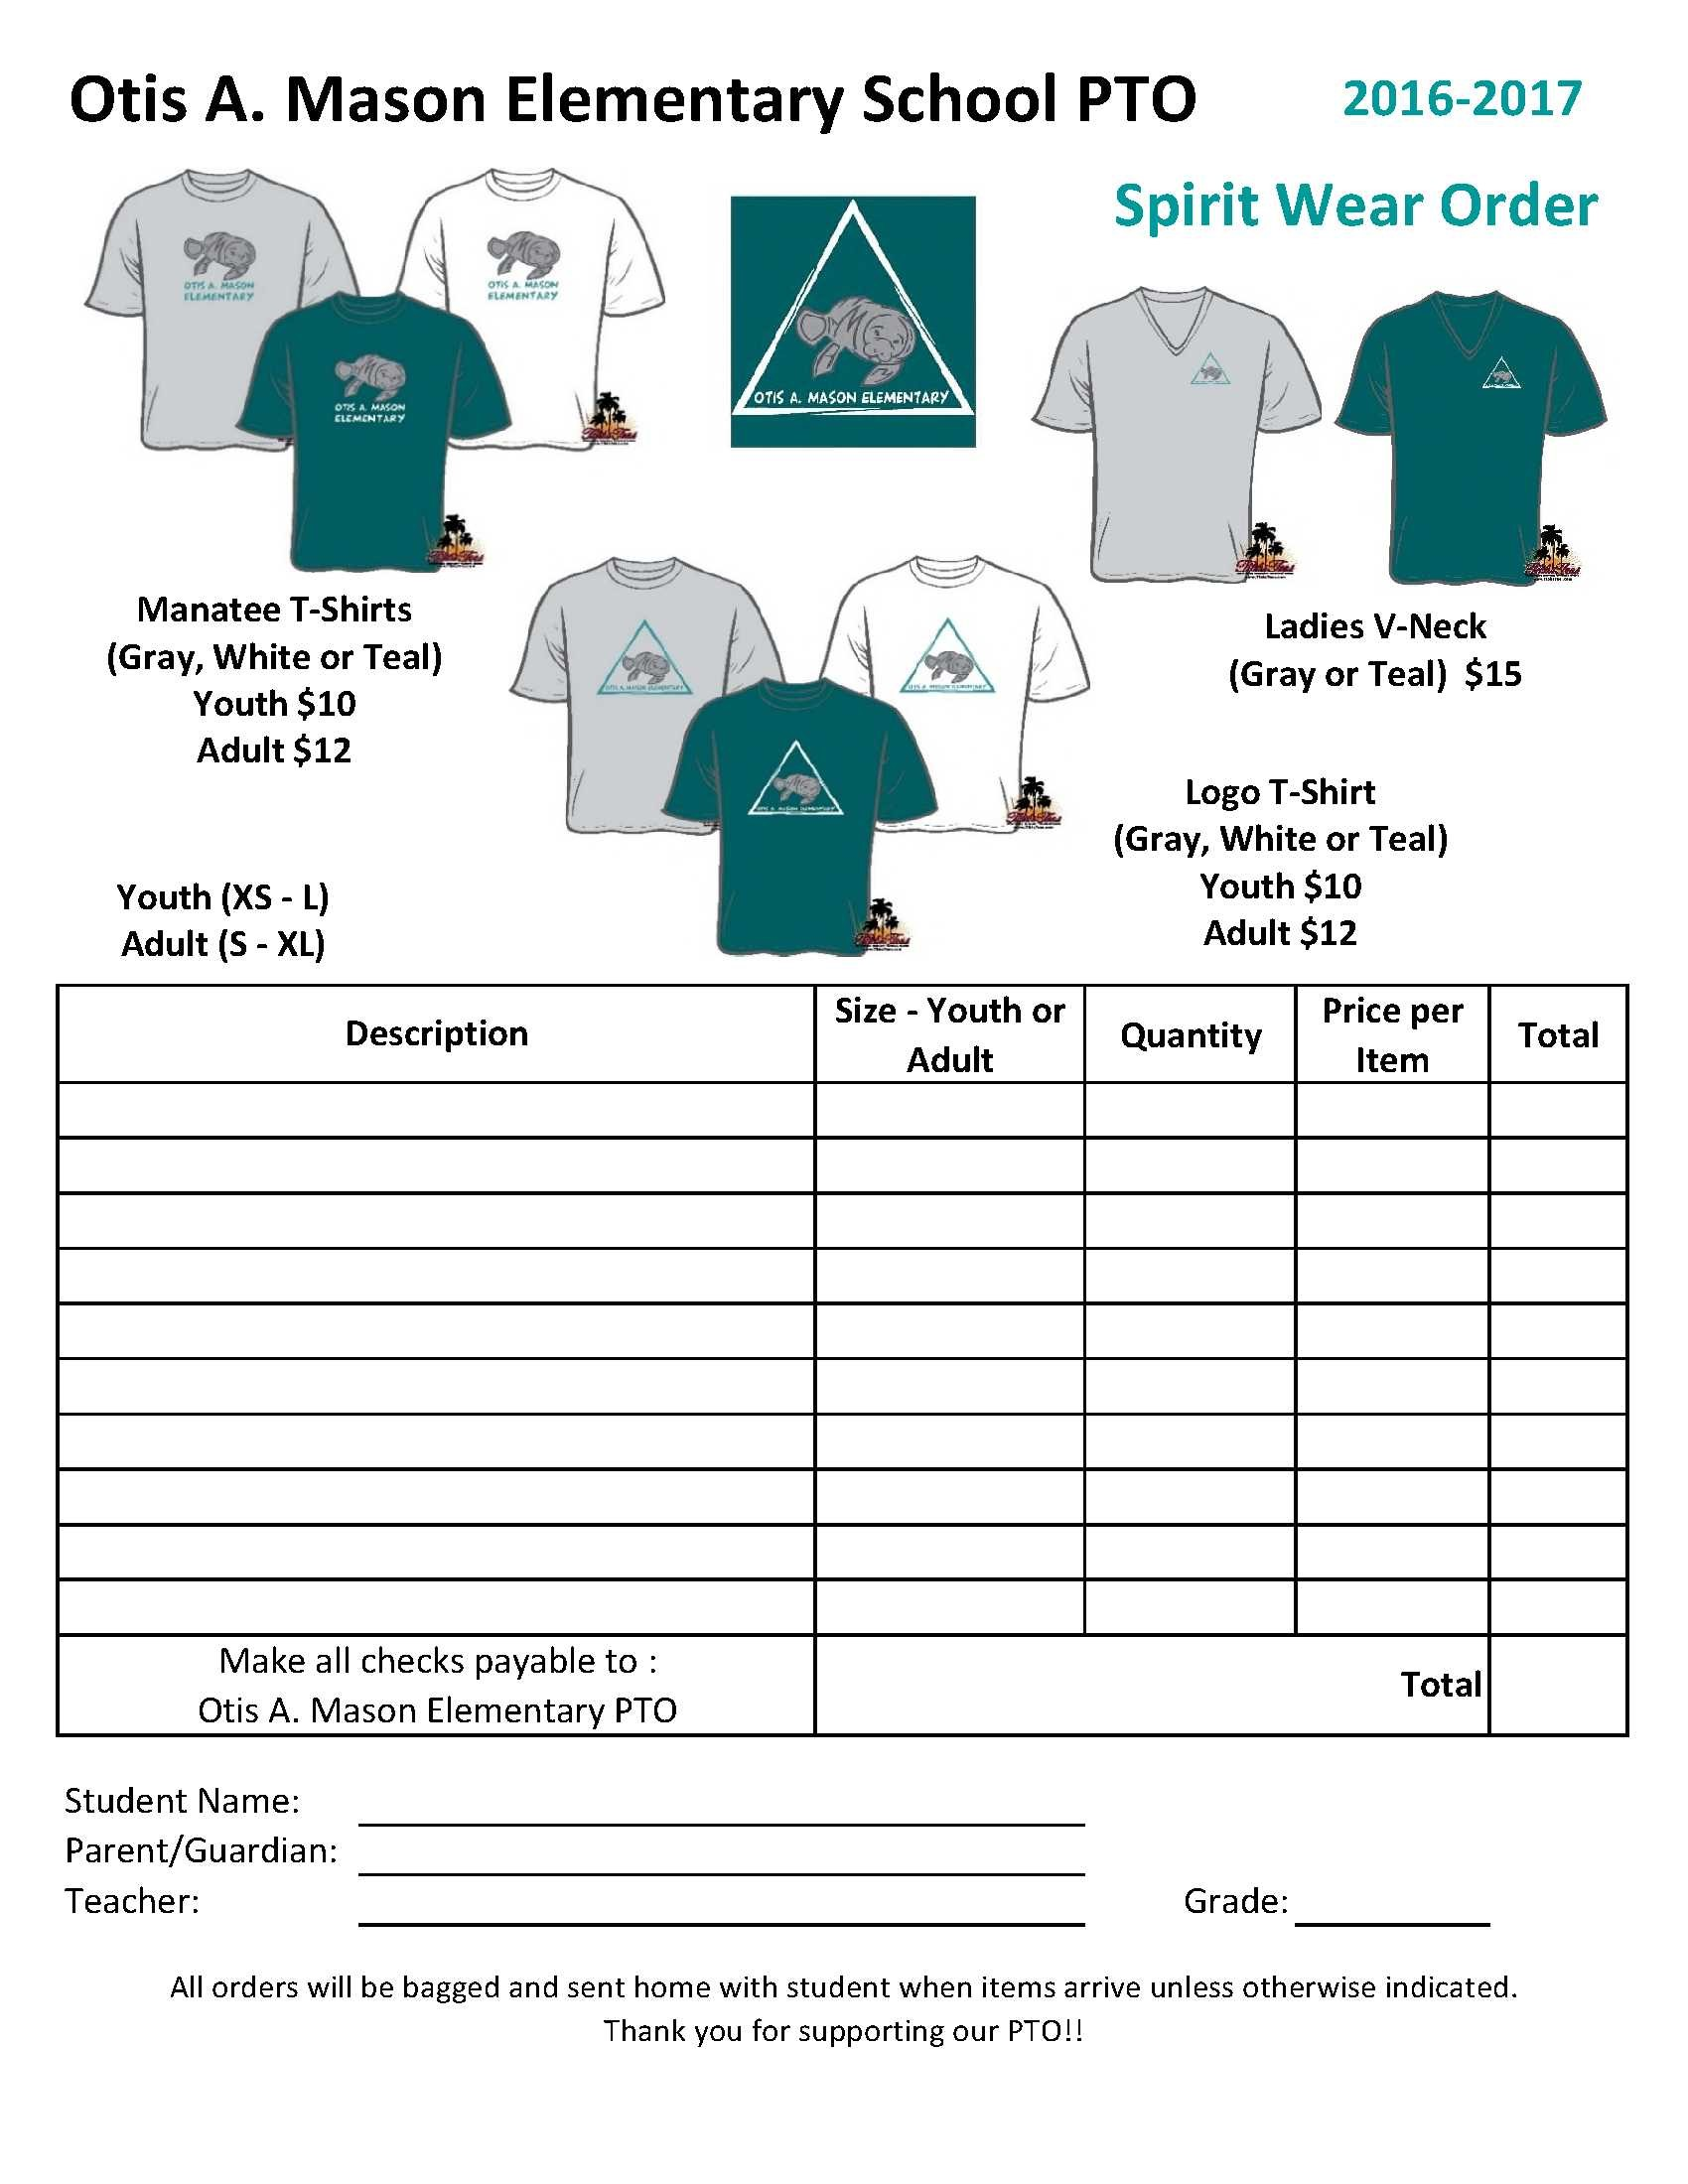 Otis A. Mason PTO Spirit Wear